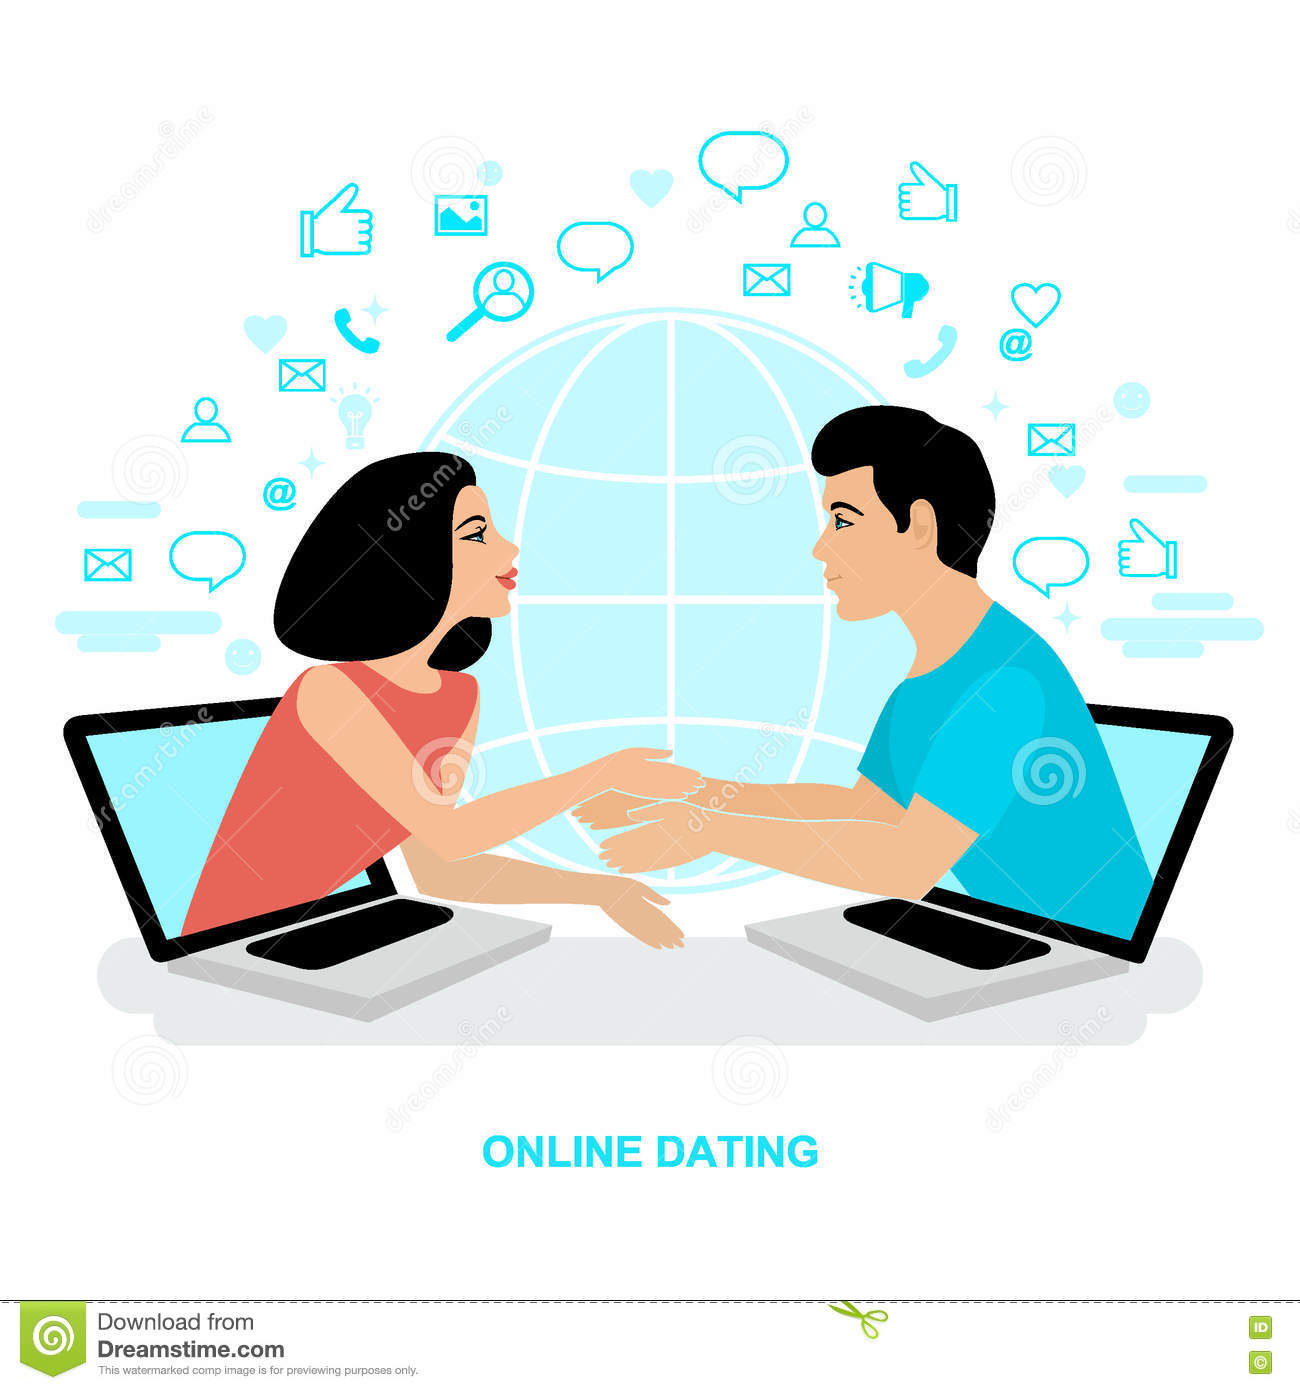 Online dating and matchmaking services